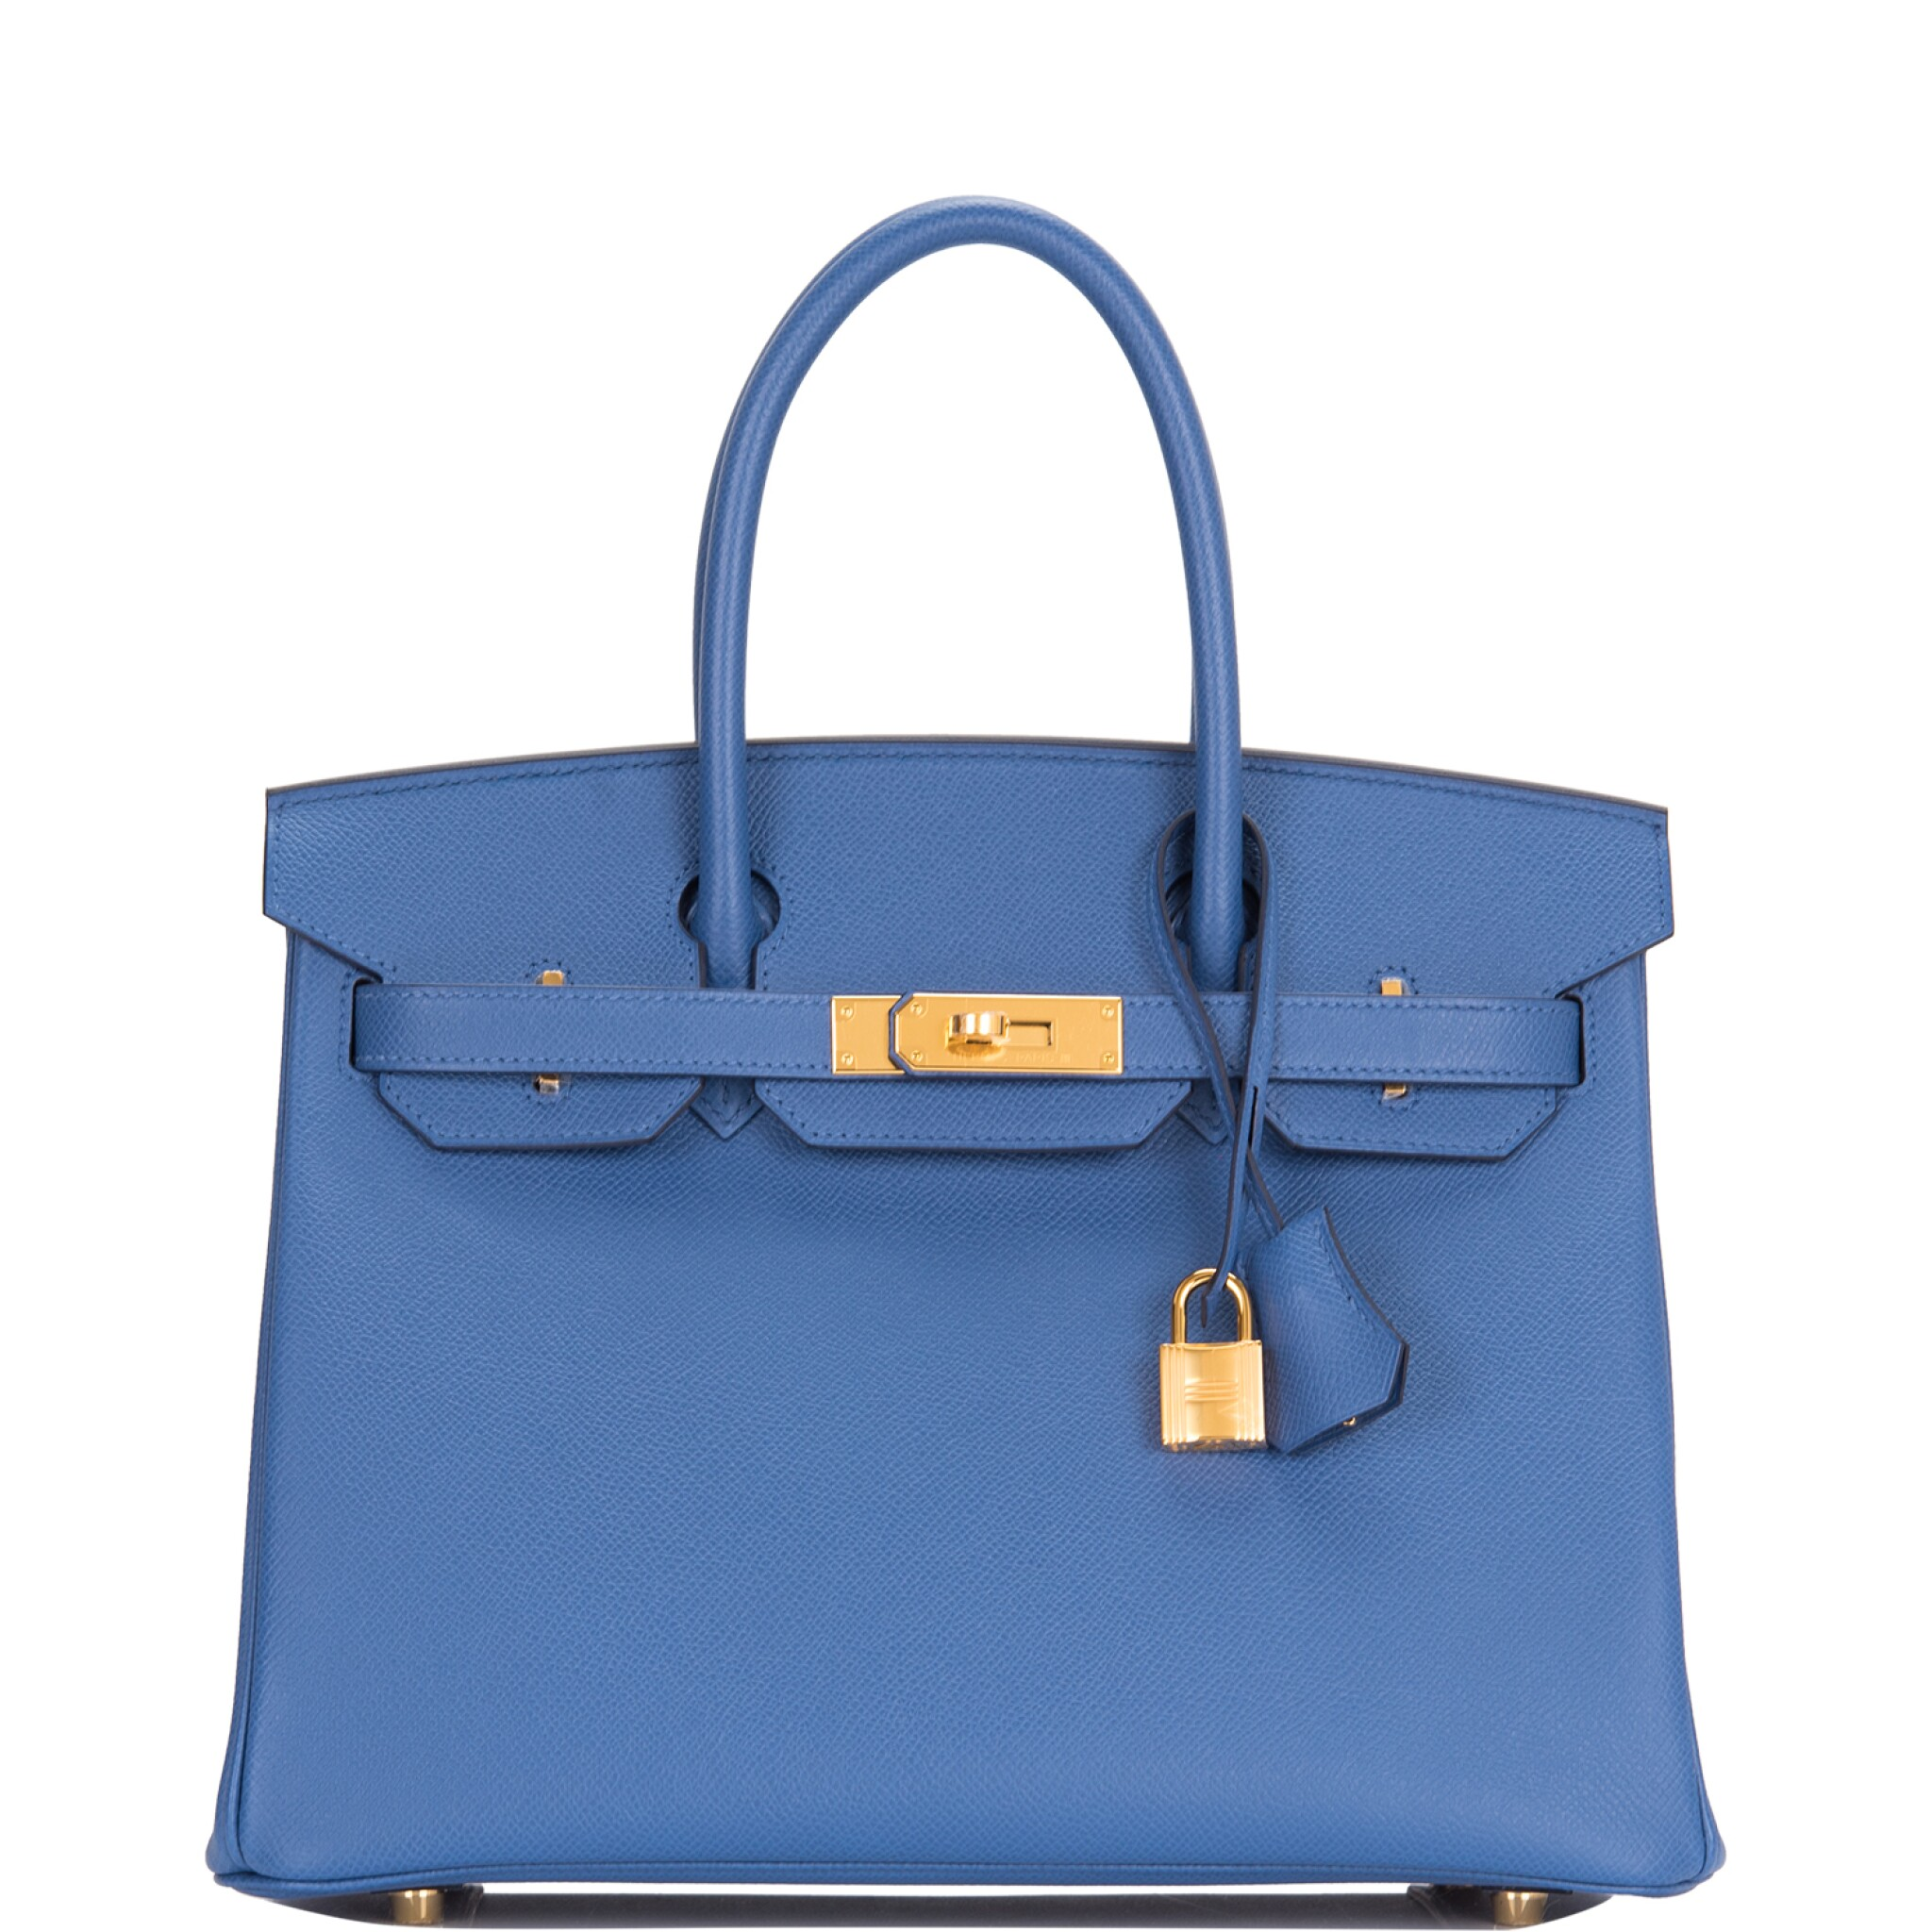 View full screen - View 1 of Lot 9. Hermès Bleu Brighton Birkin 30cm of Epsom Leather with Gold Hardware.